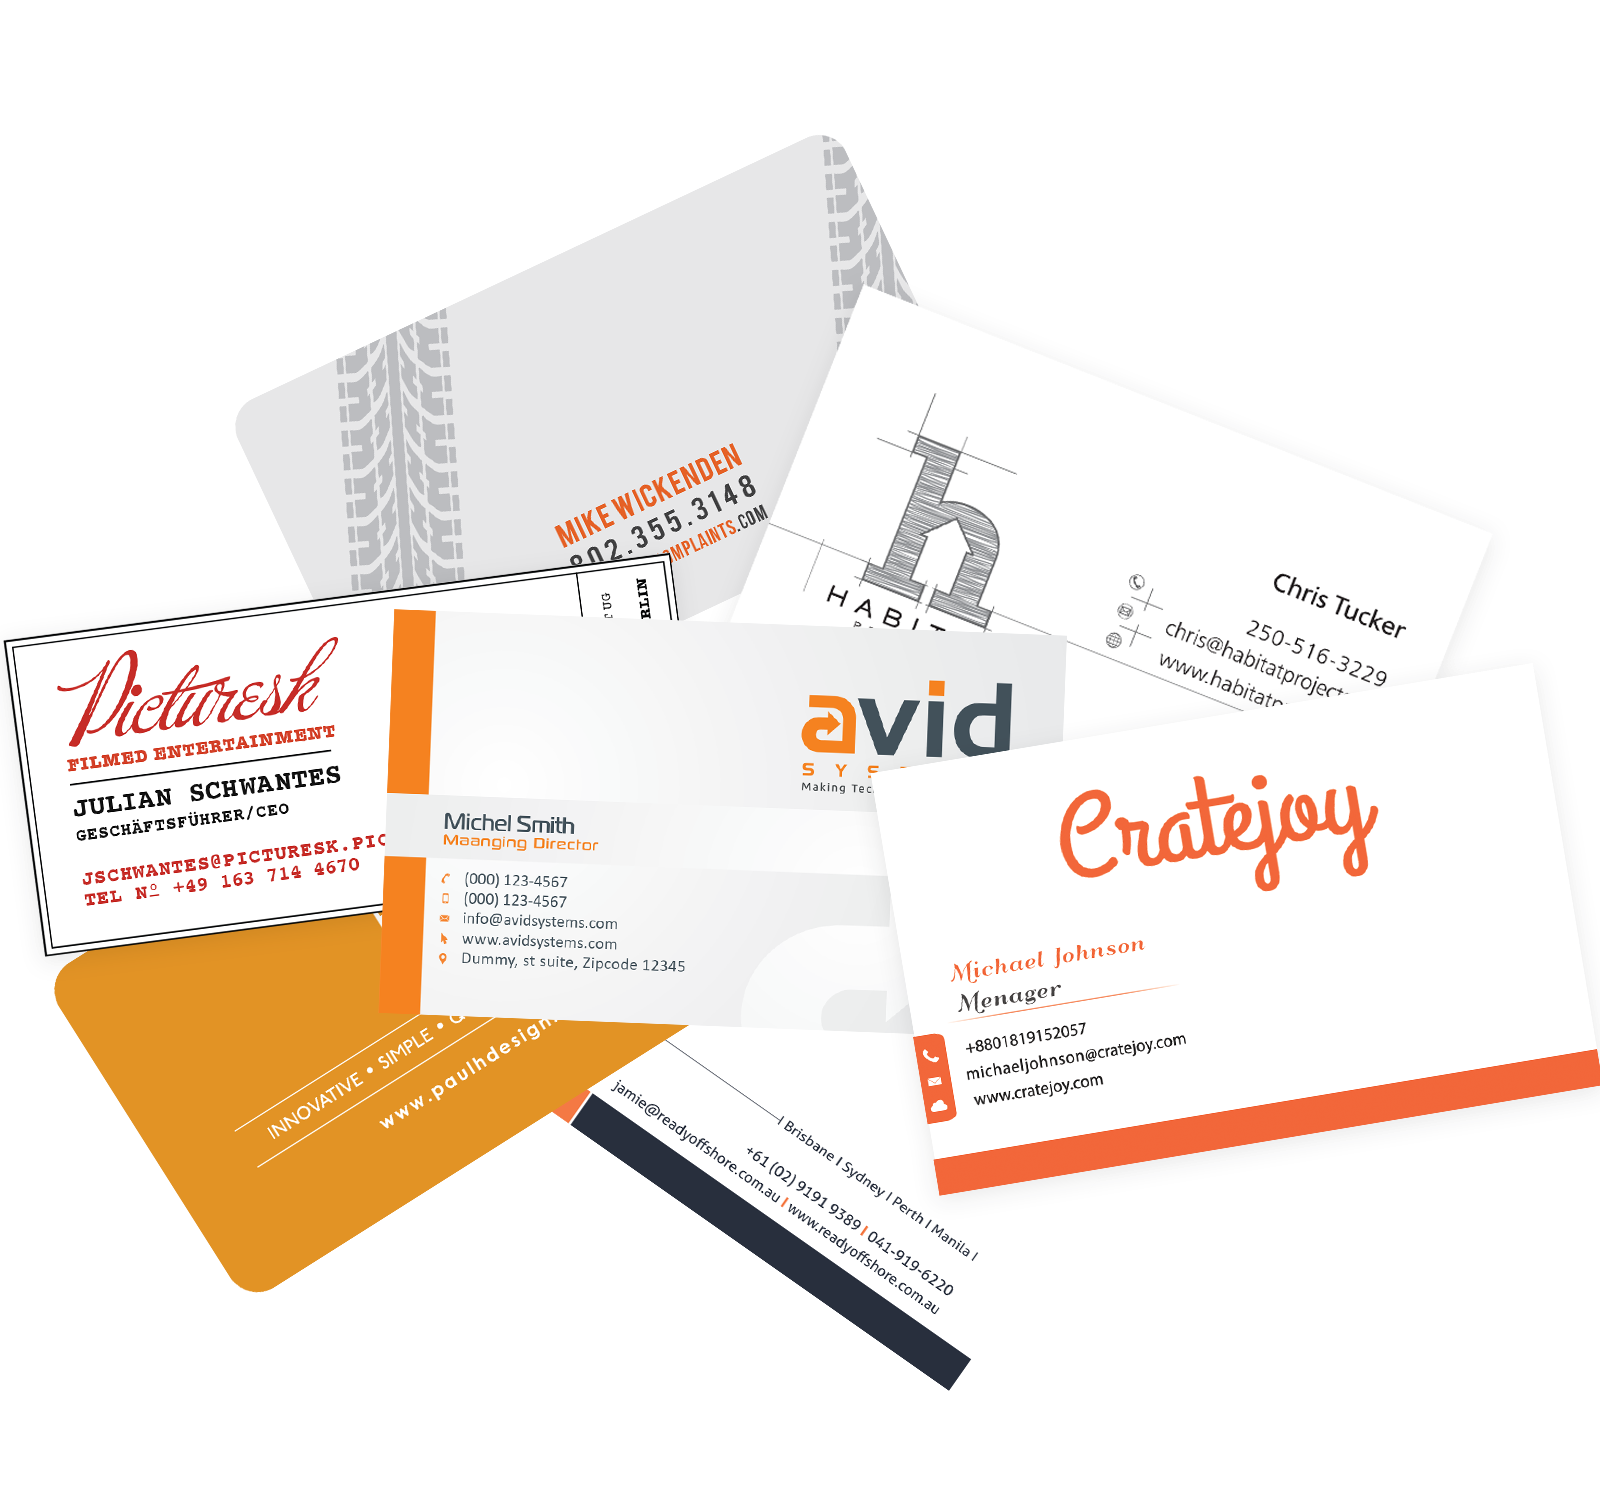 How to design business cards: business card design tips for ...